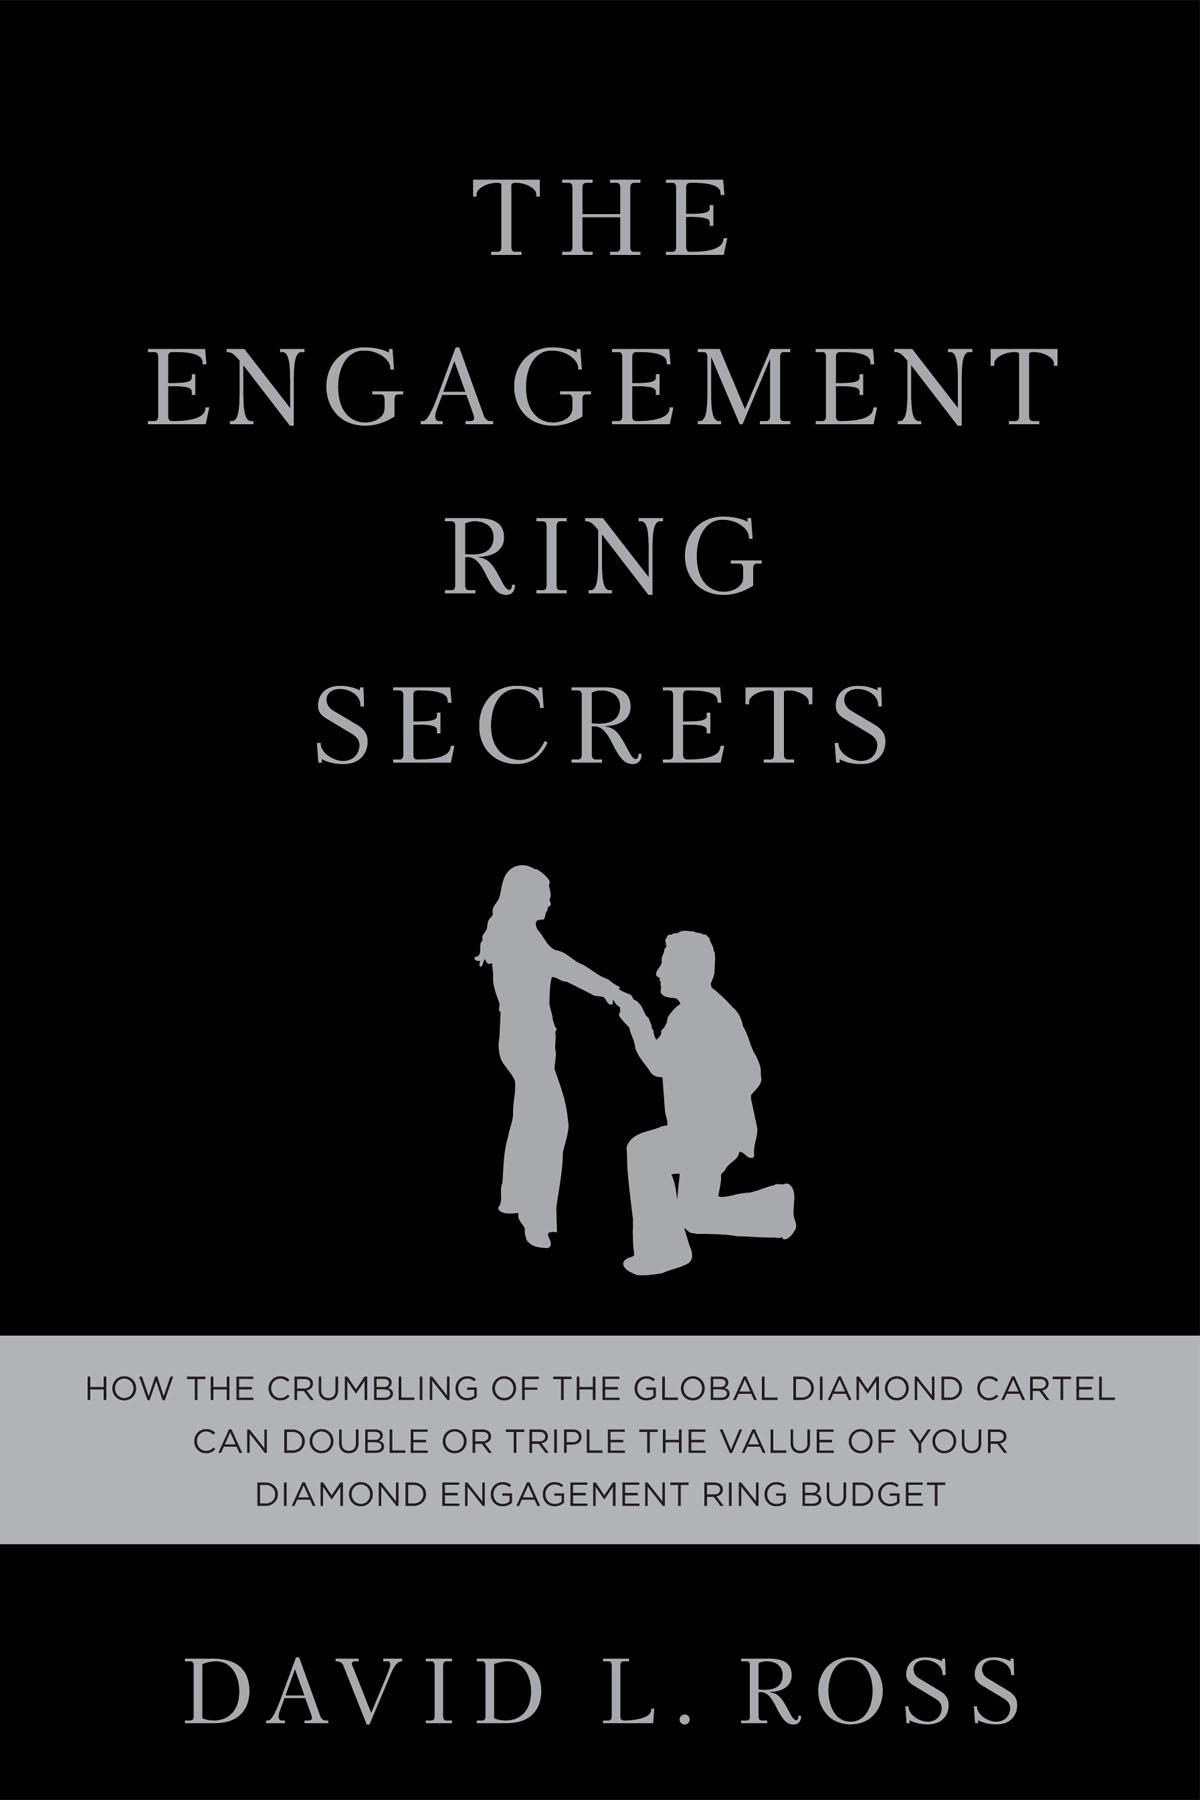 The Engagement Ring Secrets: How the Crumbling of the Global Diamond Cartel Can Double or Triple the Value of Your Diamond Engagement Ring Budget EB2370002529631